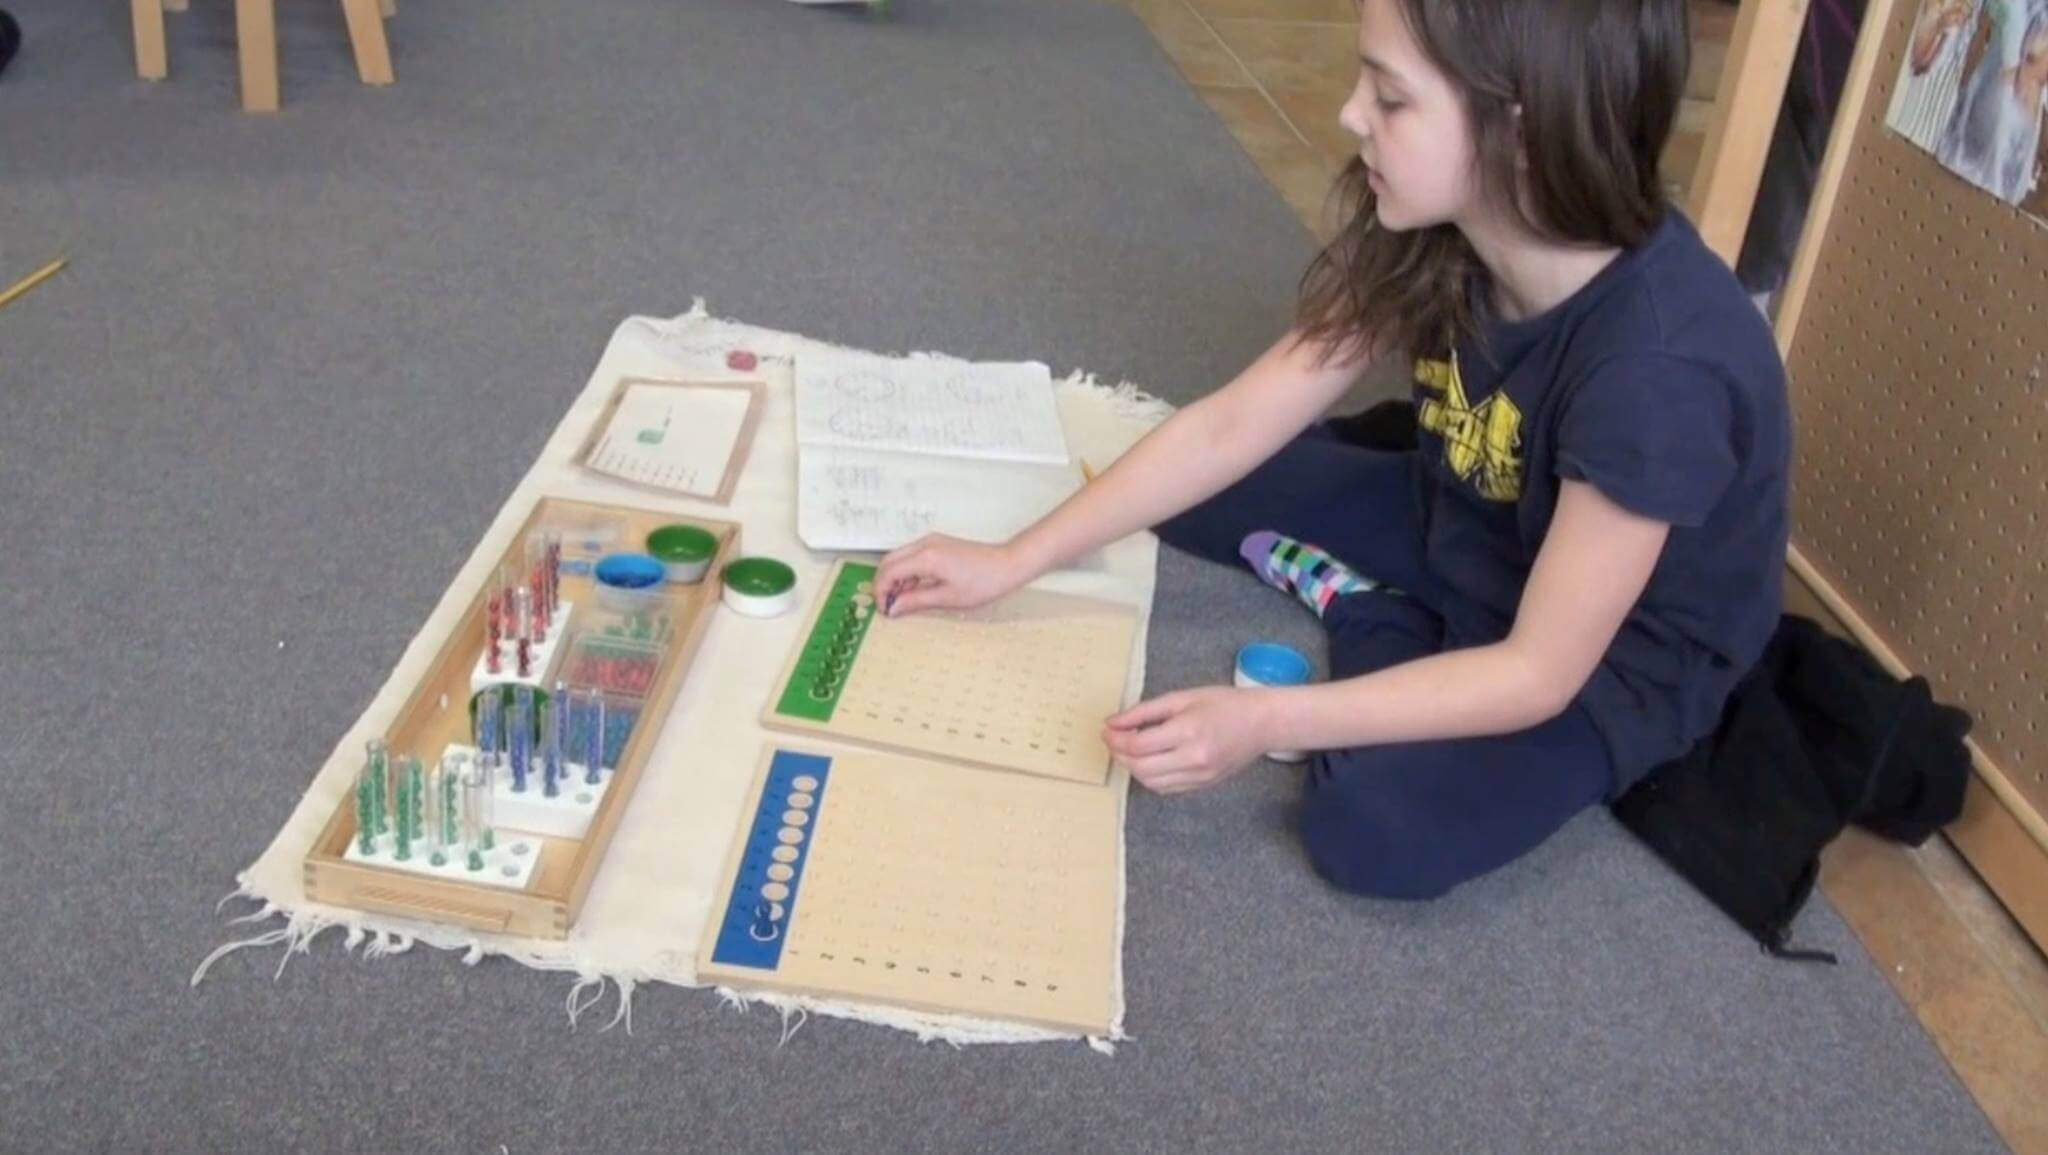 A student works on a project at Light of the World Academy, which will open this fall as a tuition-free Montessori public charter school in Pinckney.